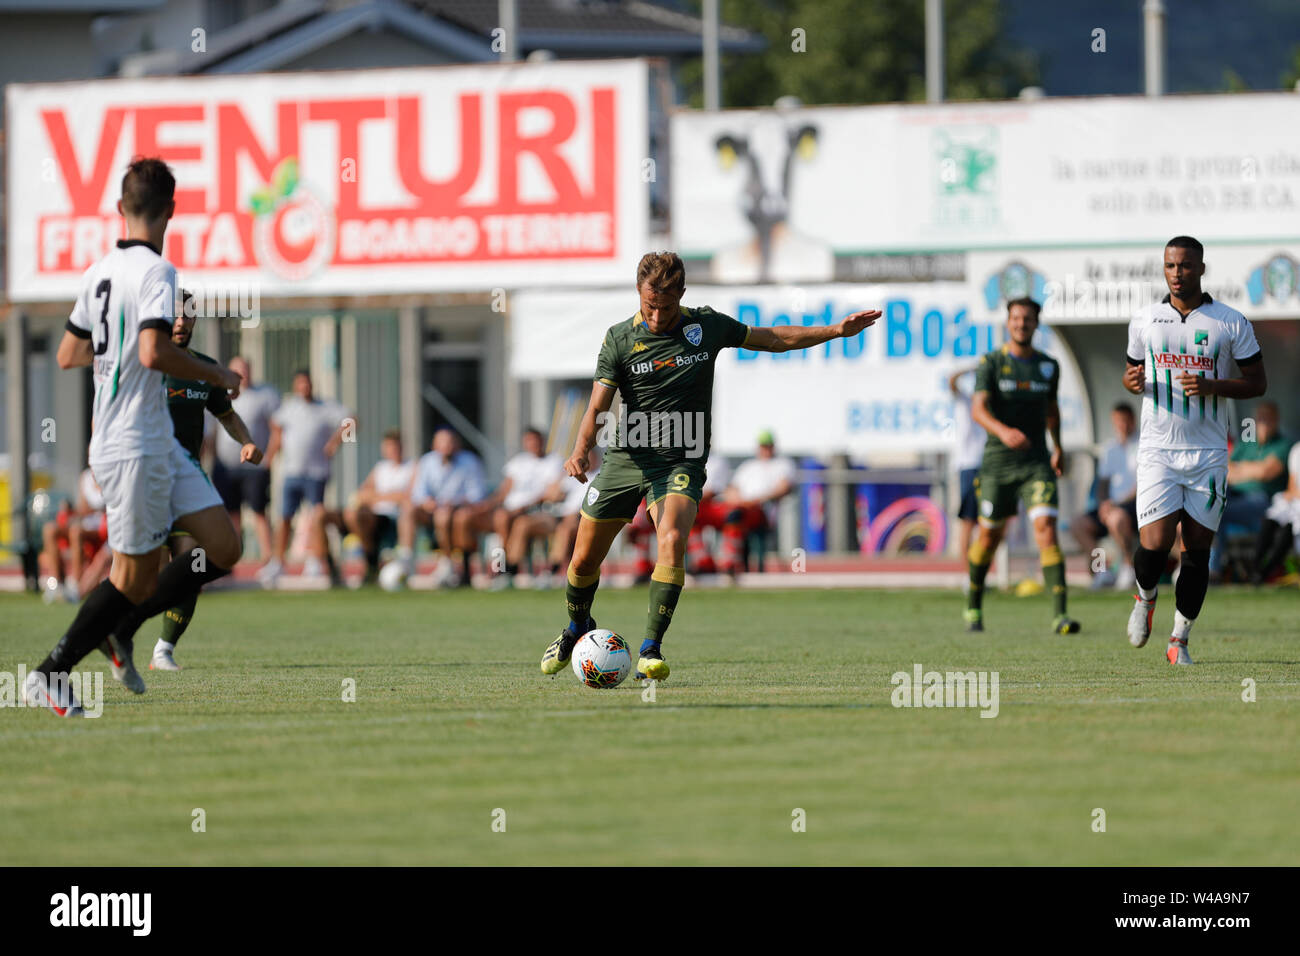 Darfo Boario, Italia. 21st July, 2019. Foto Stefano Nicoli/LaPresse21 luglio 2019 Darfo Boario (Bs), Italia sport calcio Amichevole Brescia Darfo Pre Campionato di calcio Serie A 2019/2020 - Nella foto: Alfredo Donnarumma Photo Stefano Nicoli/LaPresse July 20, 2019 Darfo Boario (Bs), Italy sport soccer Friendly match Brescia Darfo League A TIM 2019/2020 - In the pic:Alfredo Donnarumma Credit: LaPresse/Alamy Live News - Stock Image